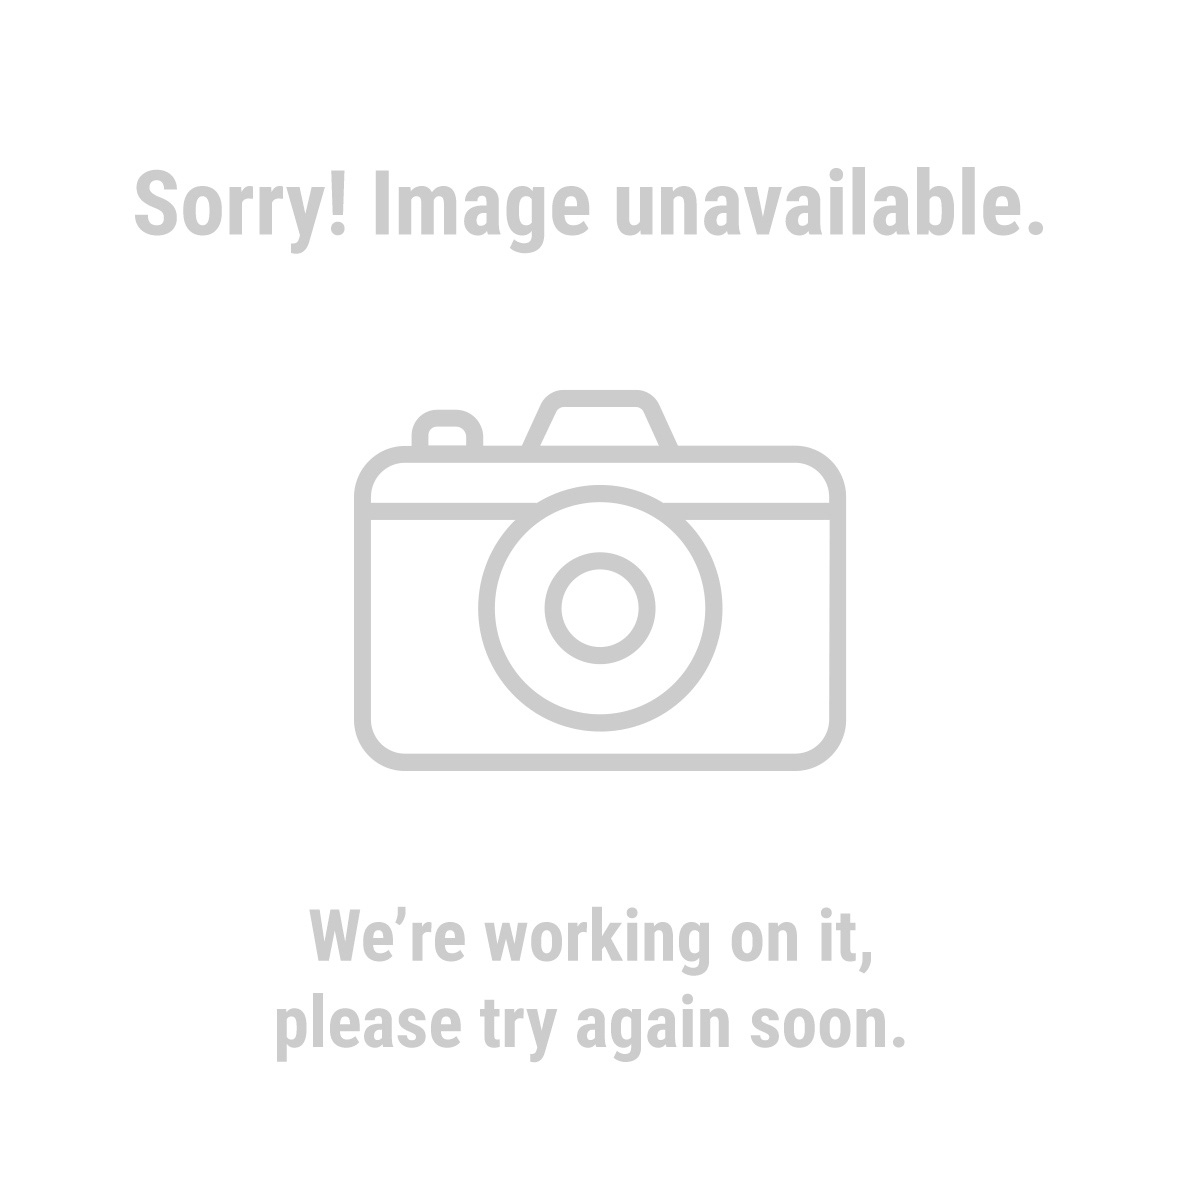 Western Safety 1949 30 Piece Dust Masks